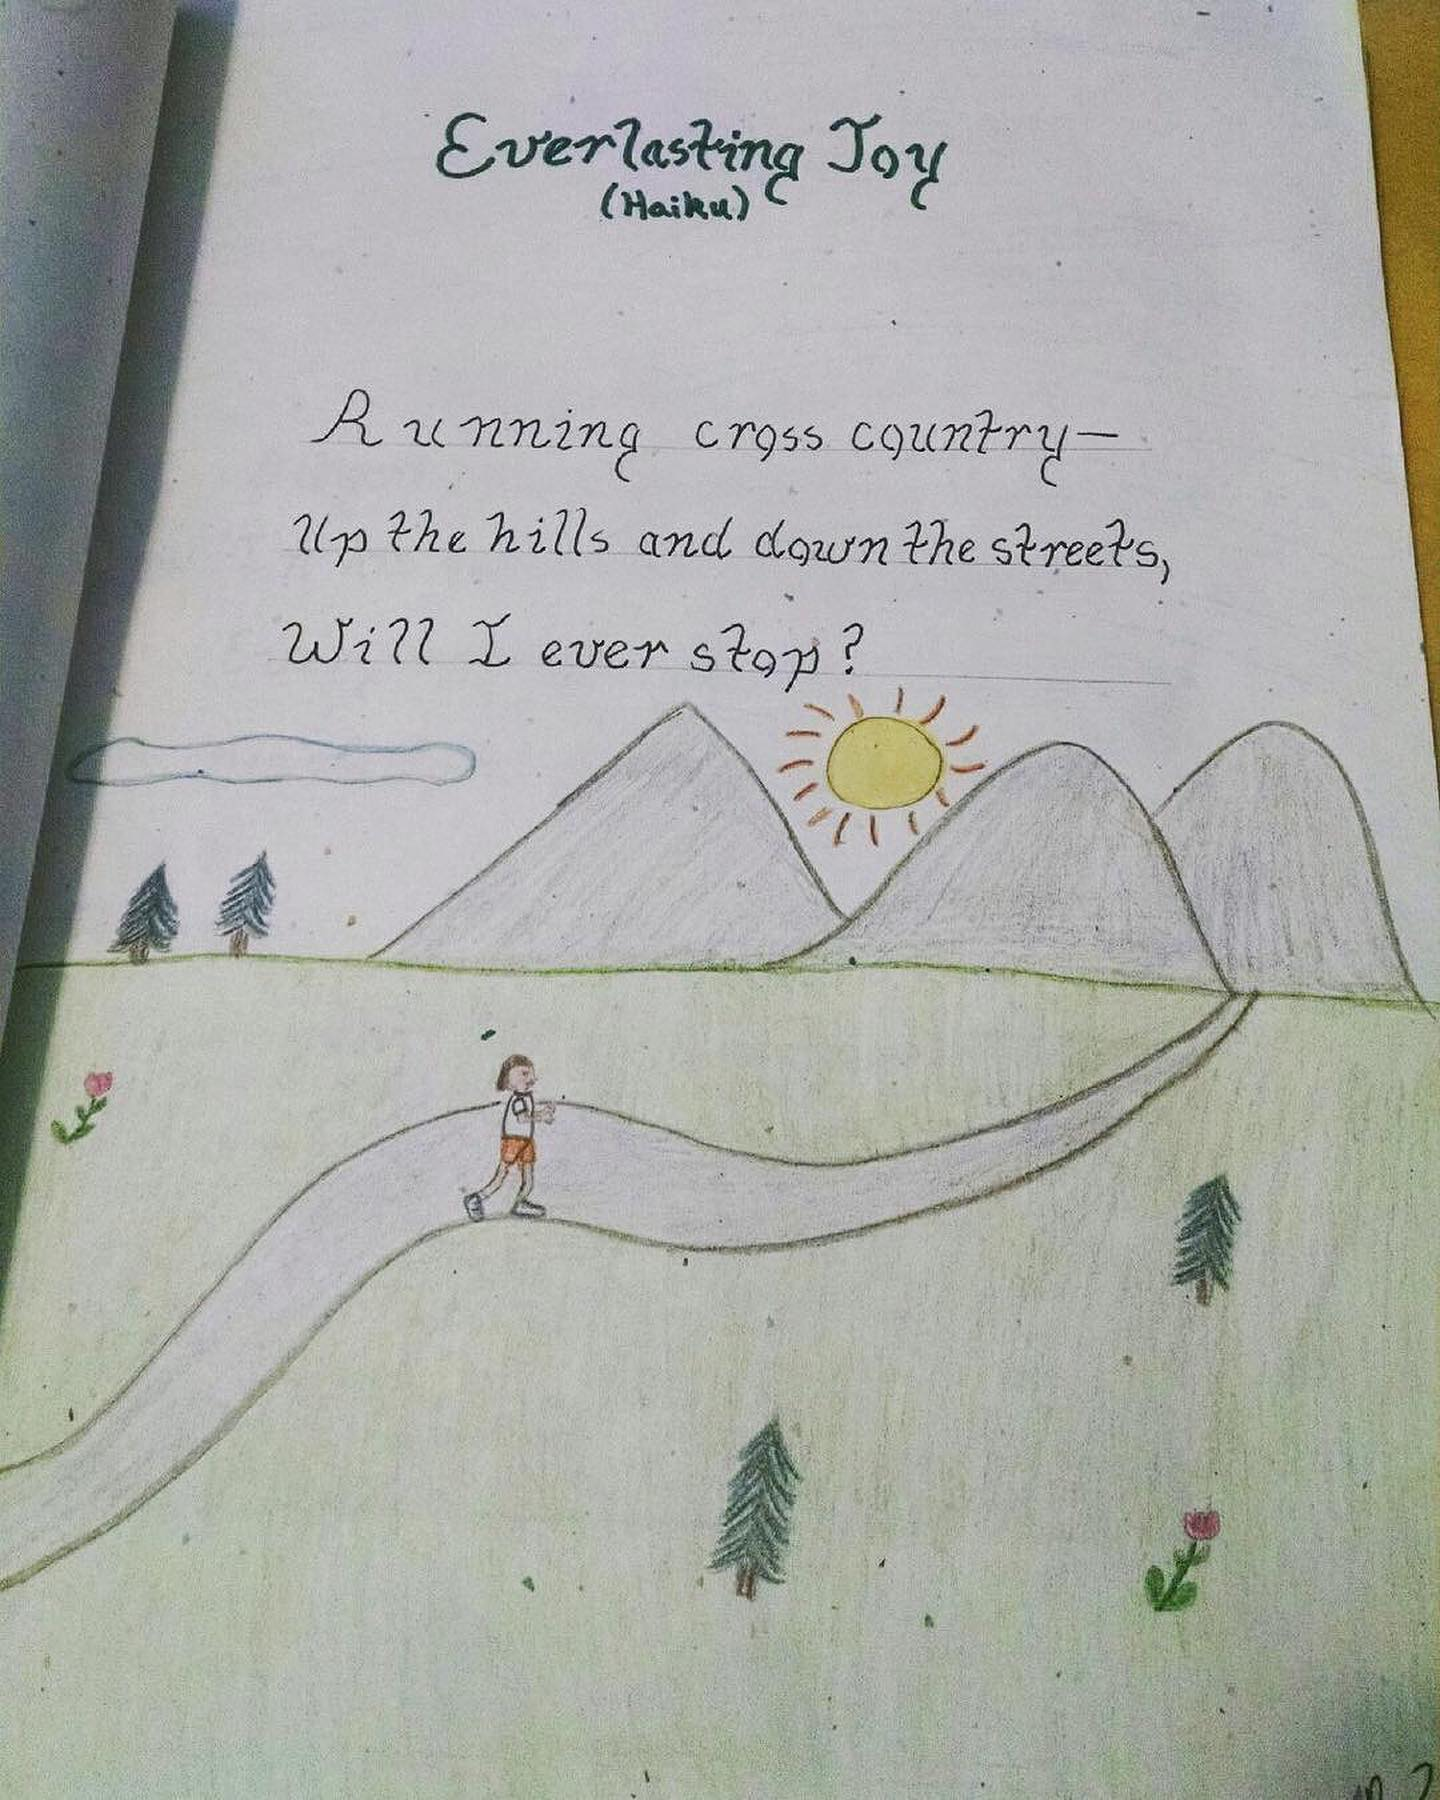 Camille has loved running since she was a child. here's a picture she made when she was child.